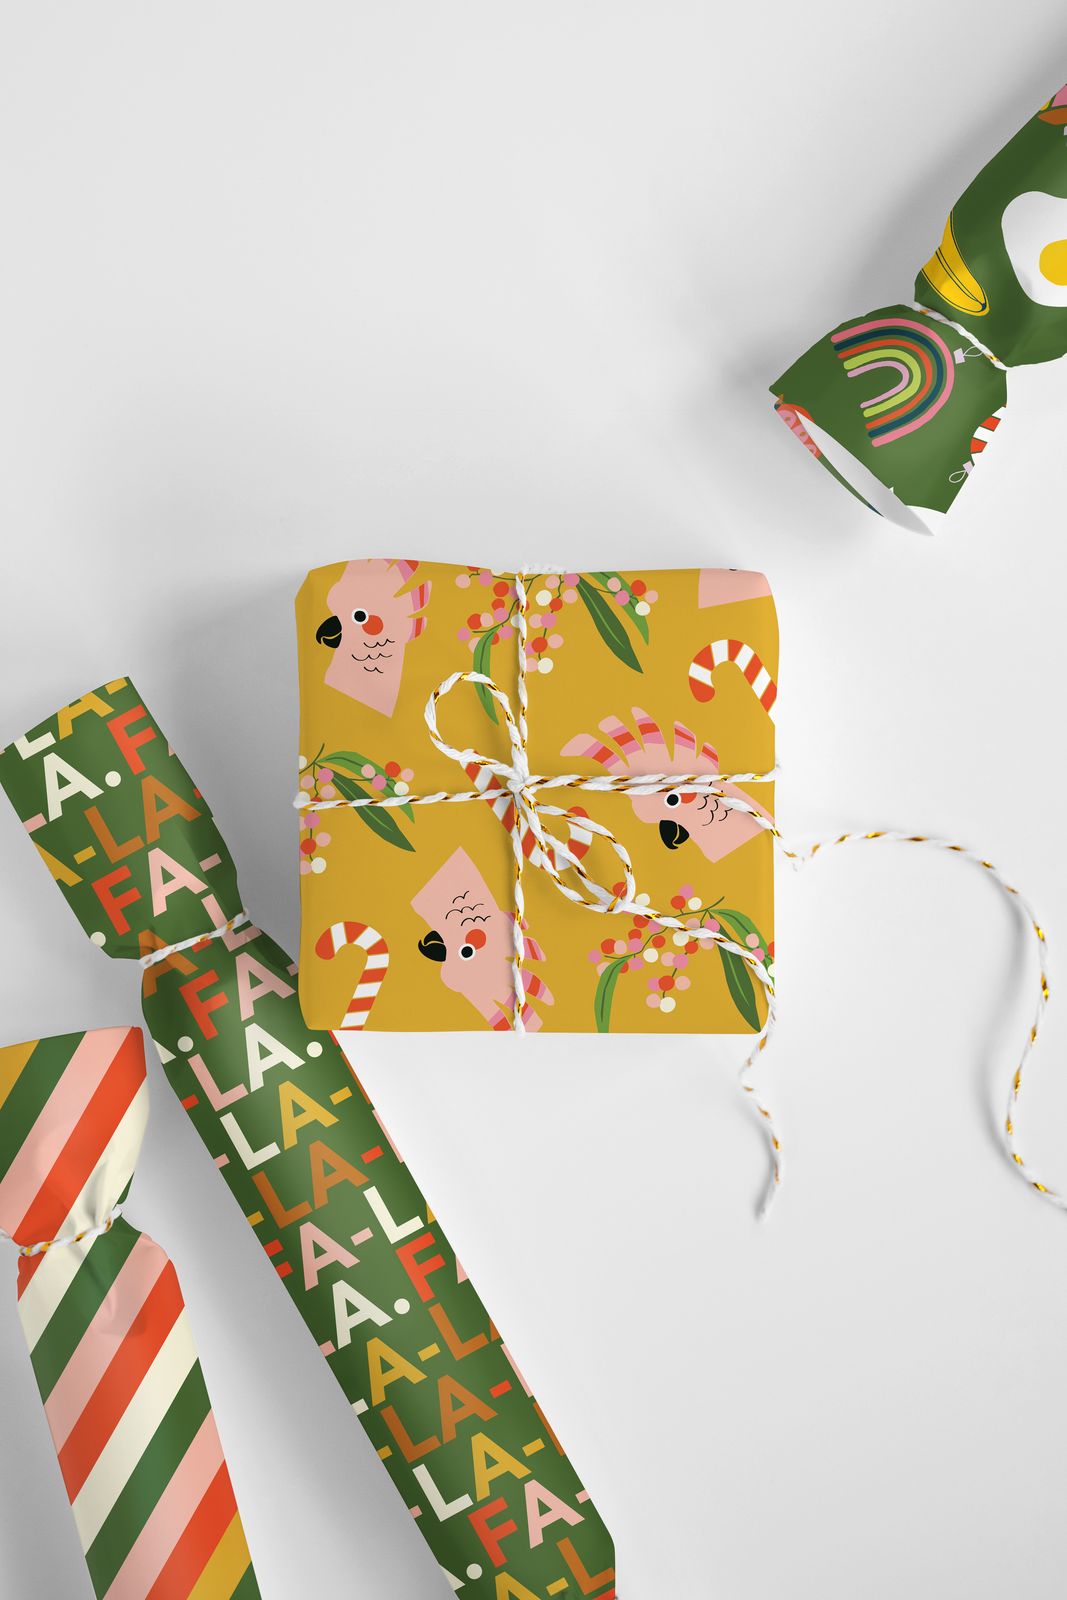 'FA-LA-LA' Christmas Wrapping Paper